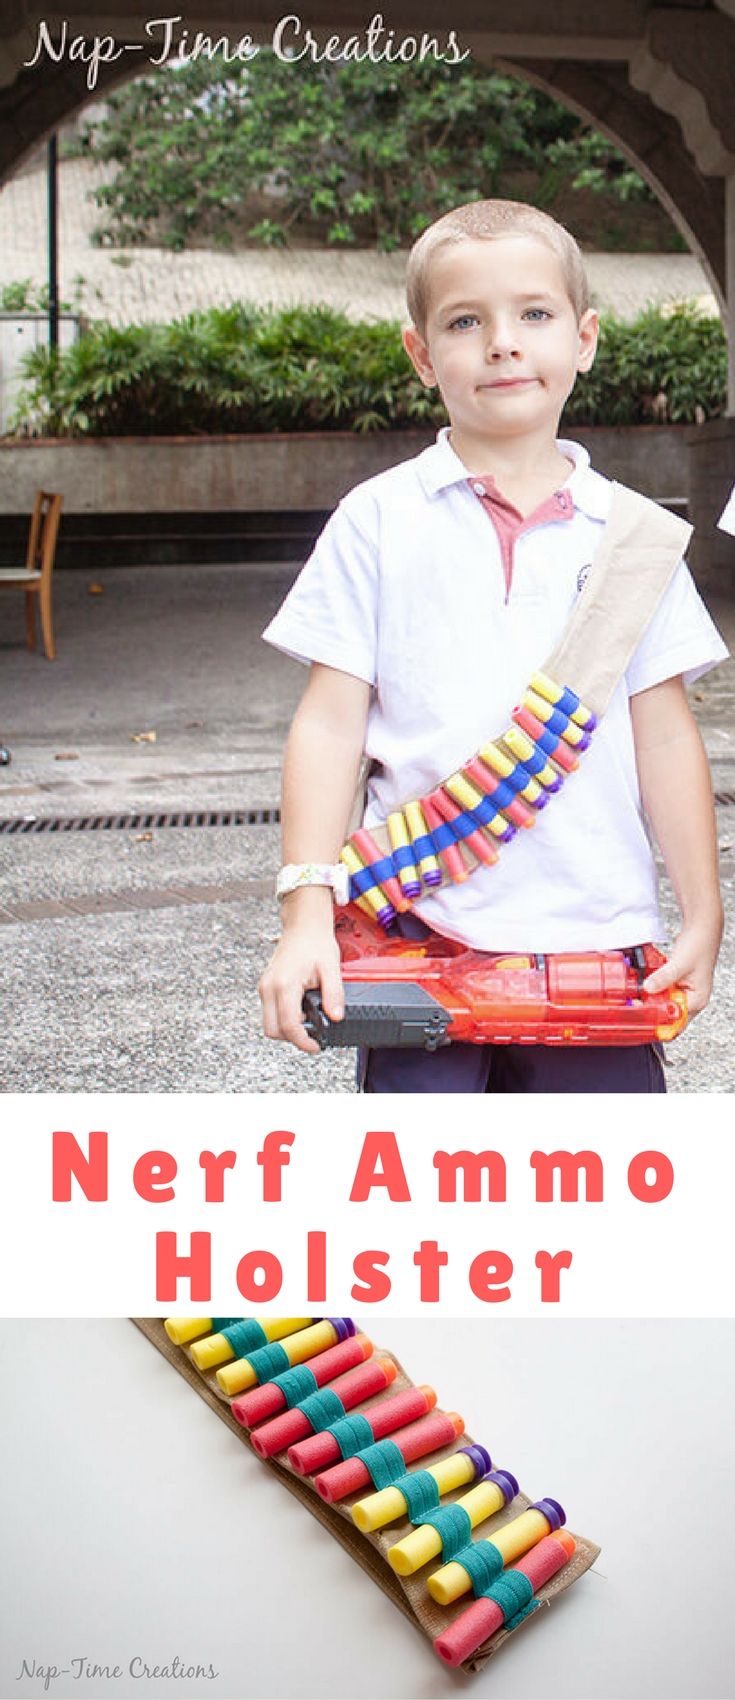 The boys have been after me to make them Nerf Ammo Holsters and today I'm showing how to make one for your boys {or girls} too.